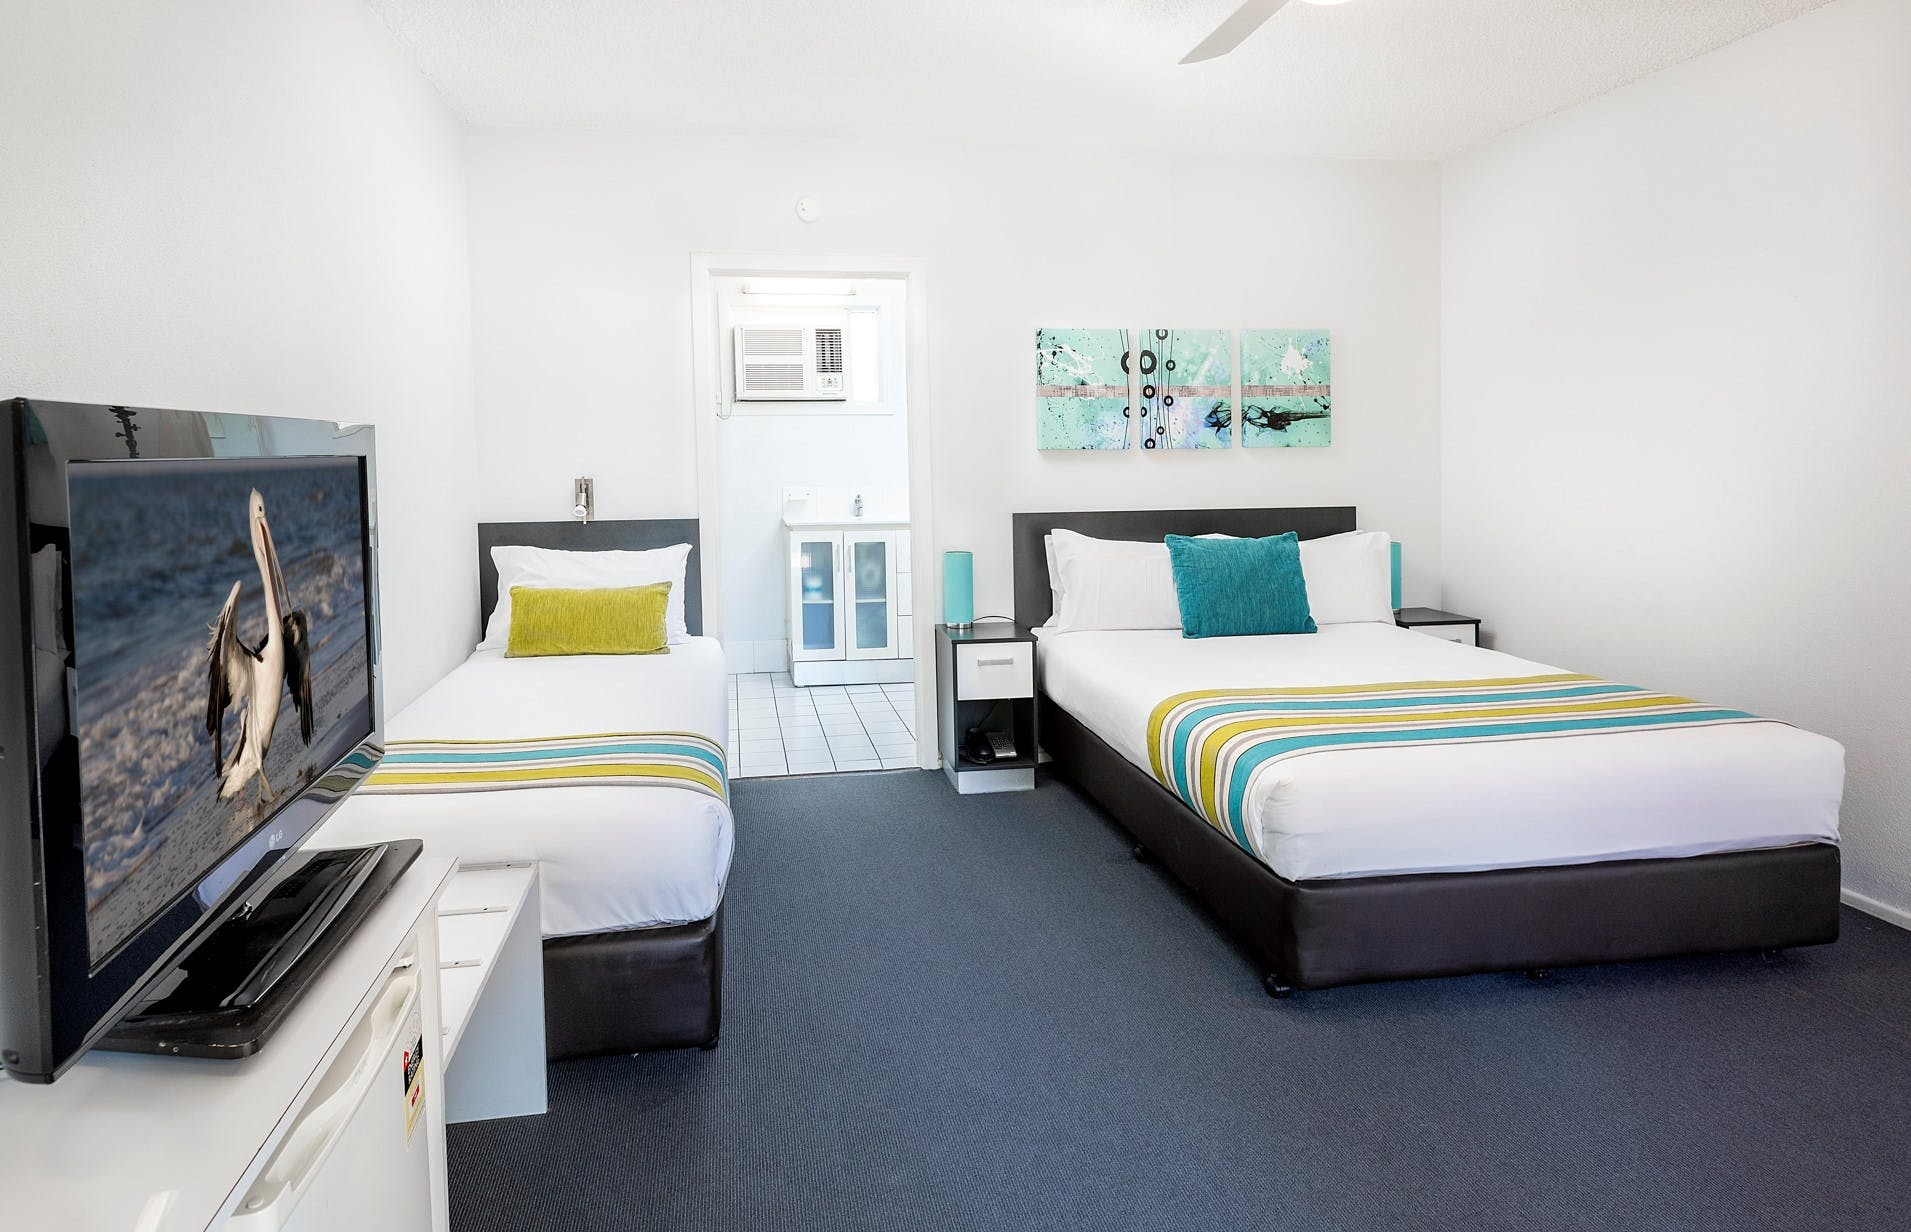 Ground floor rooms by the beach for group bookings at Hervey Bay Beach Motel